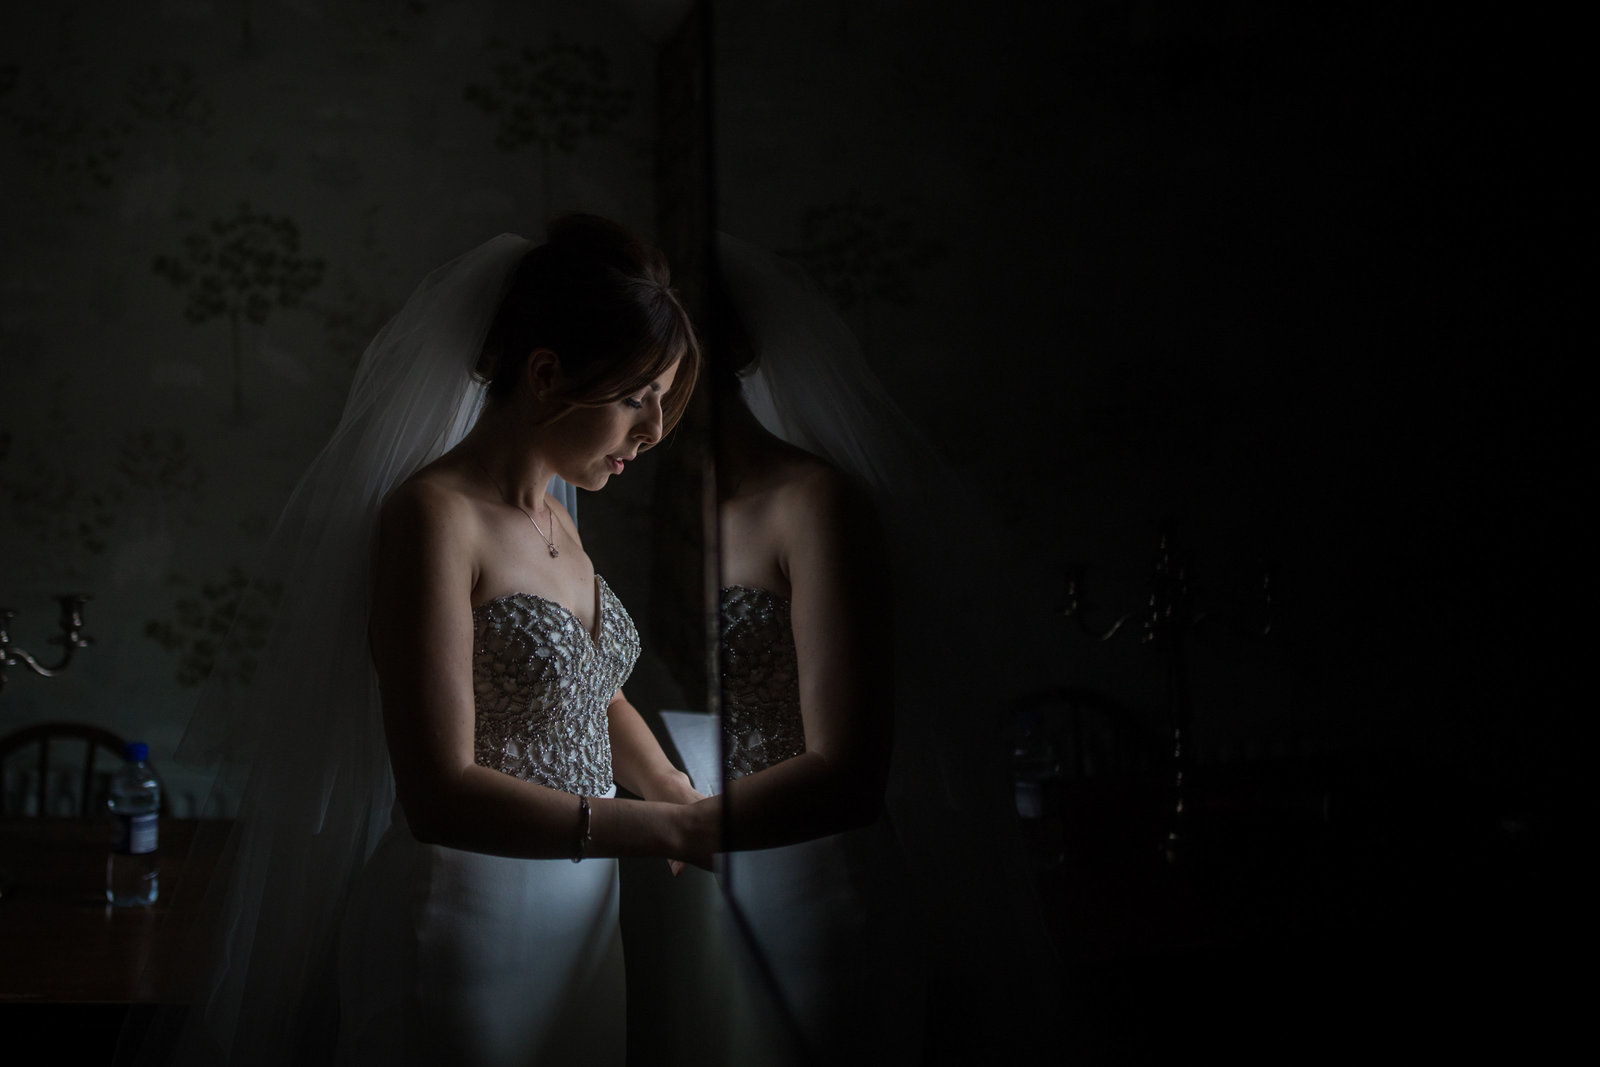 A bride stands and looks out a window on the morning of her wedding in Norwich. She is looking down and is lit by the window light.